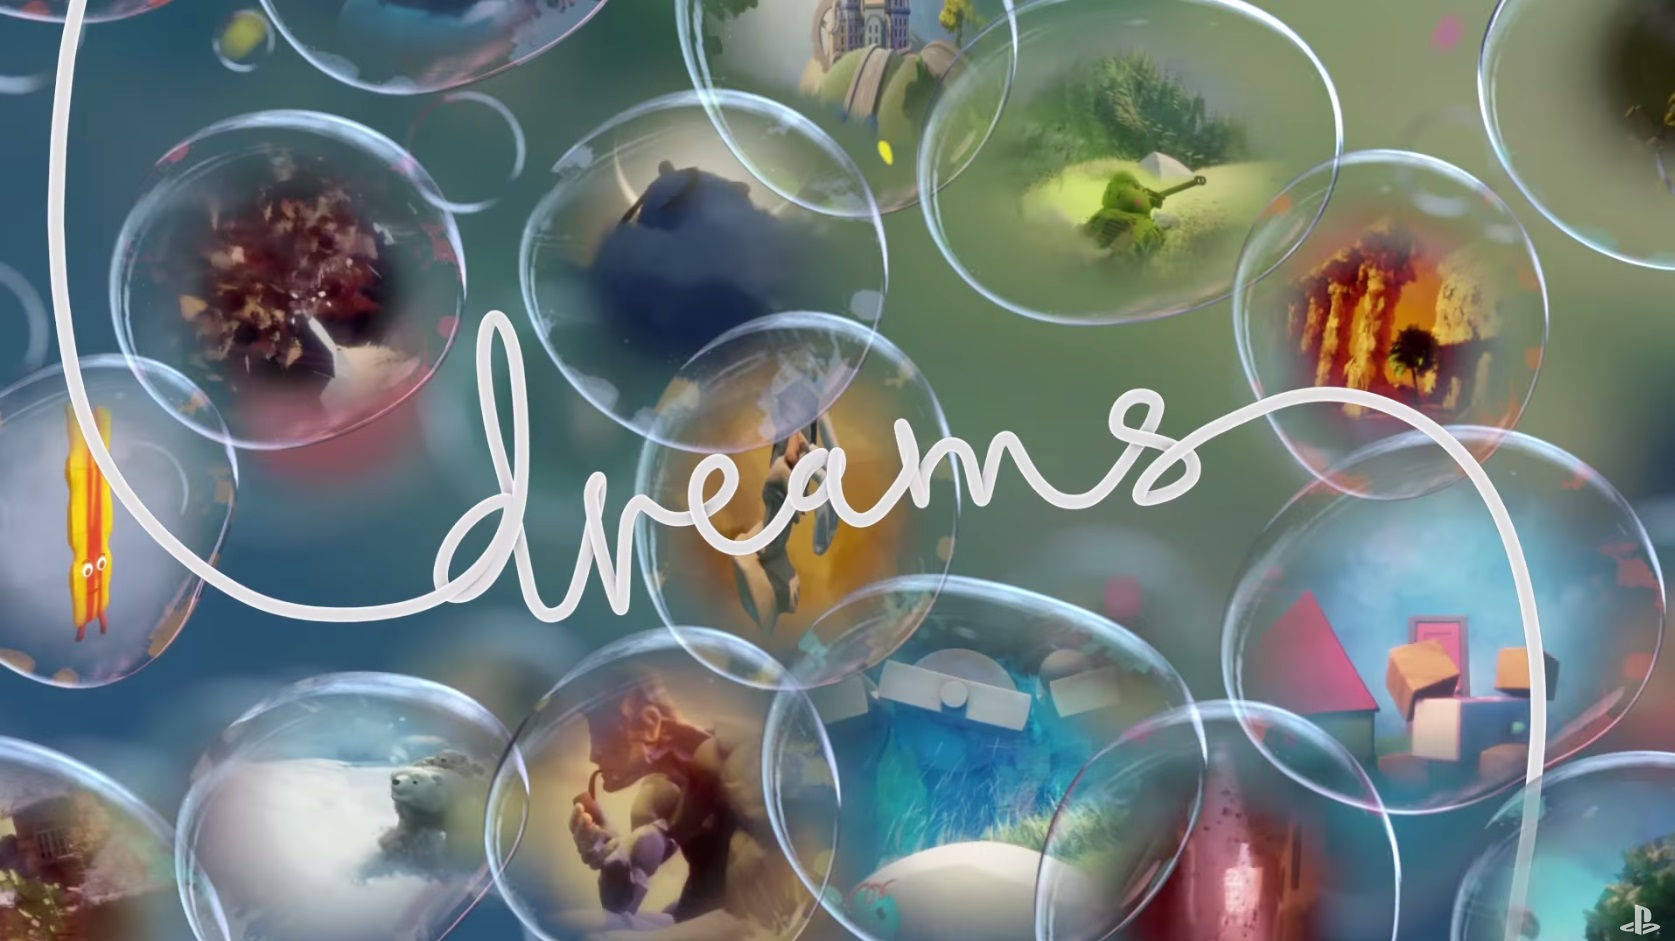 dreams-ps4-logo-artwork-screenshot.jpg